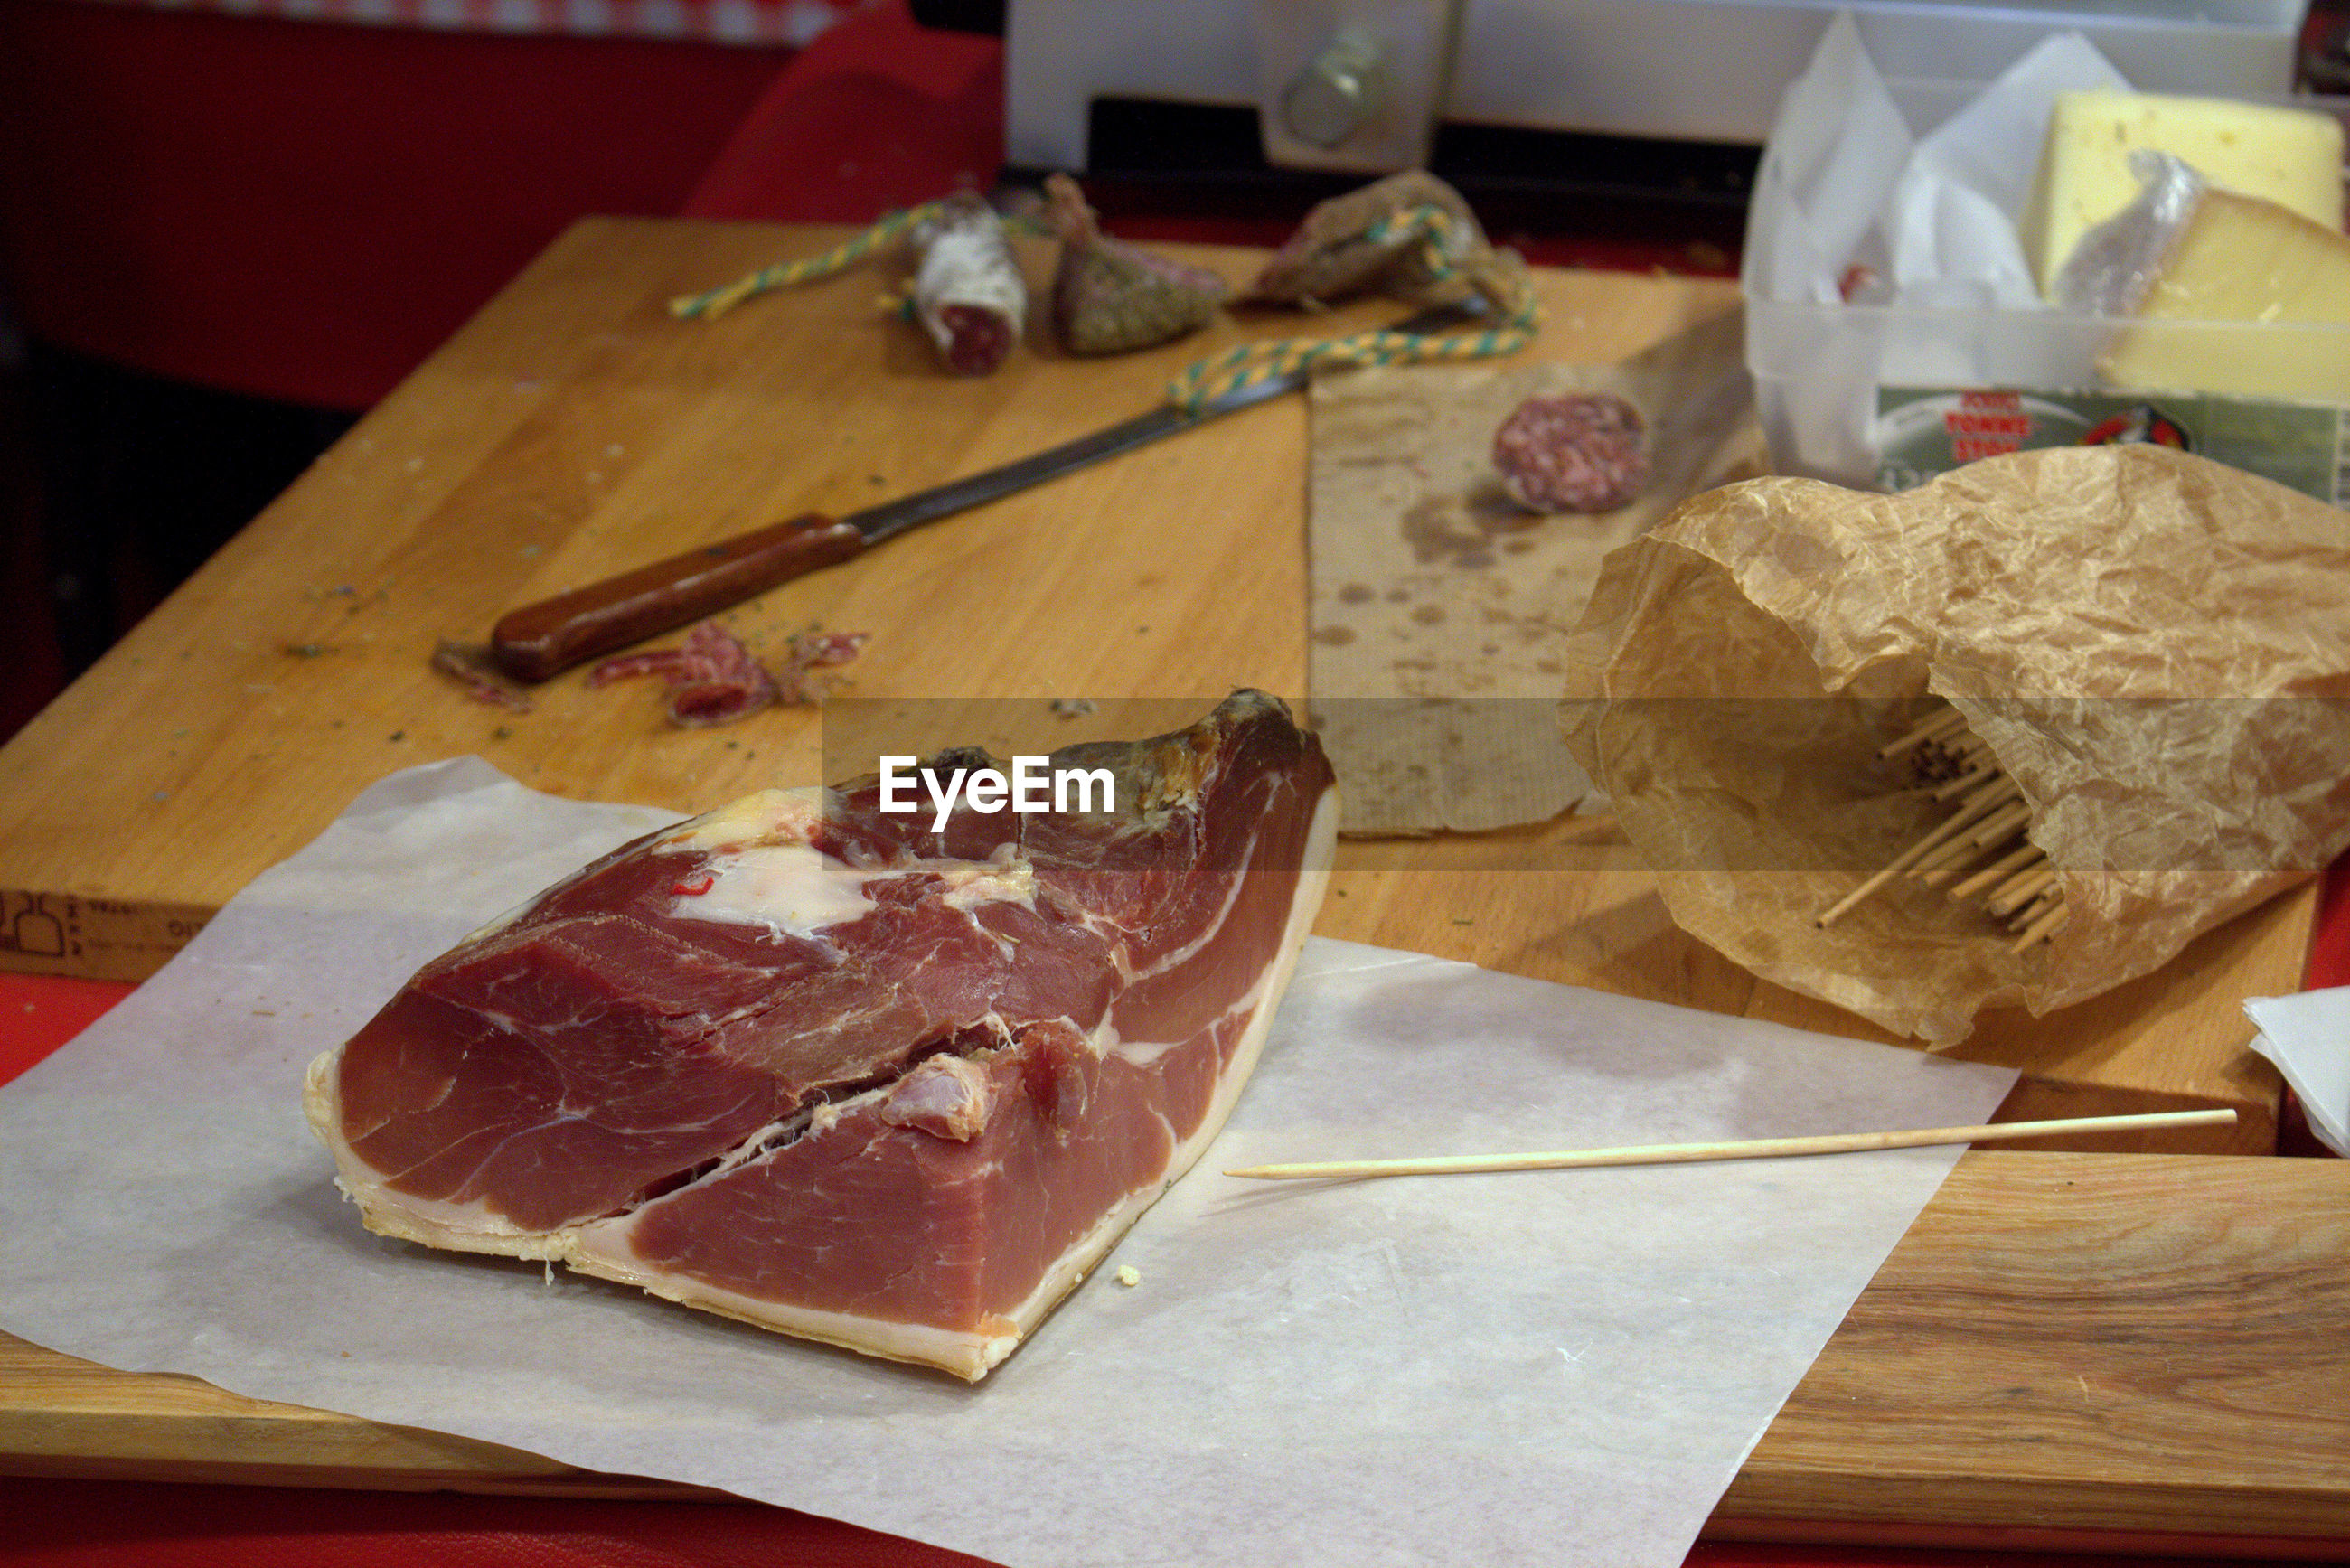 High angle view of meat by knife on wooden table